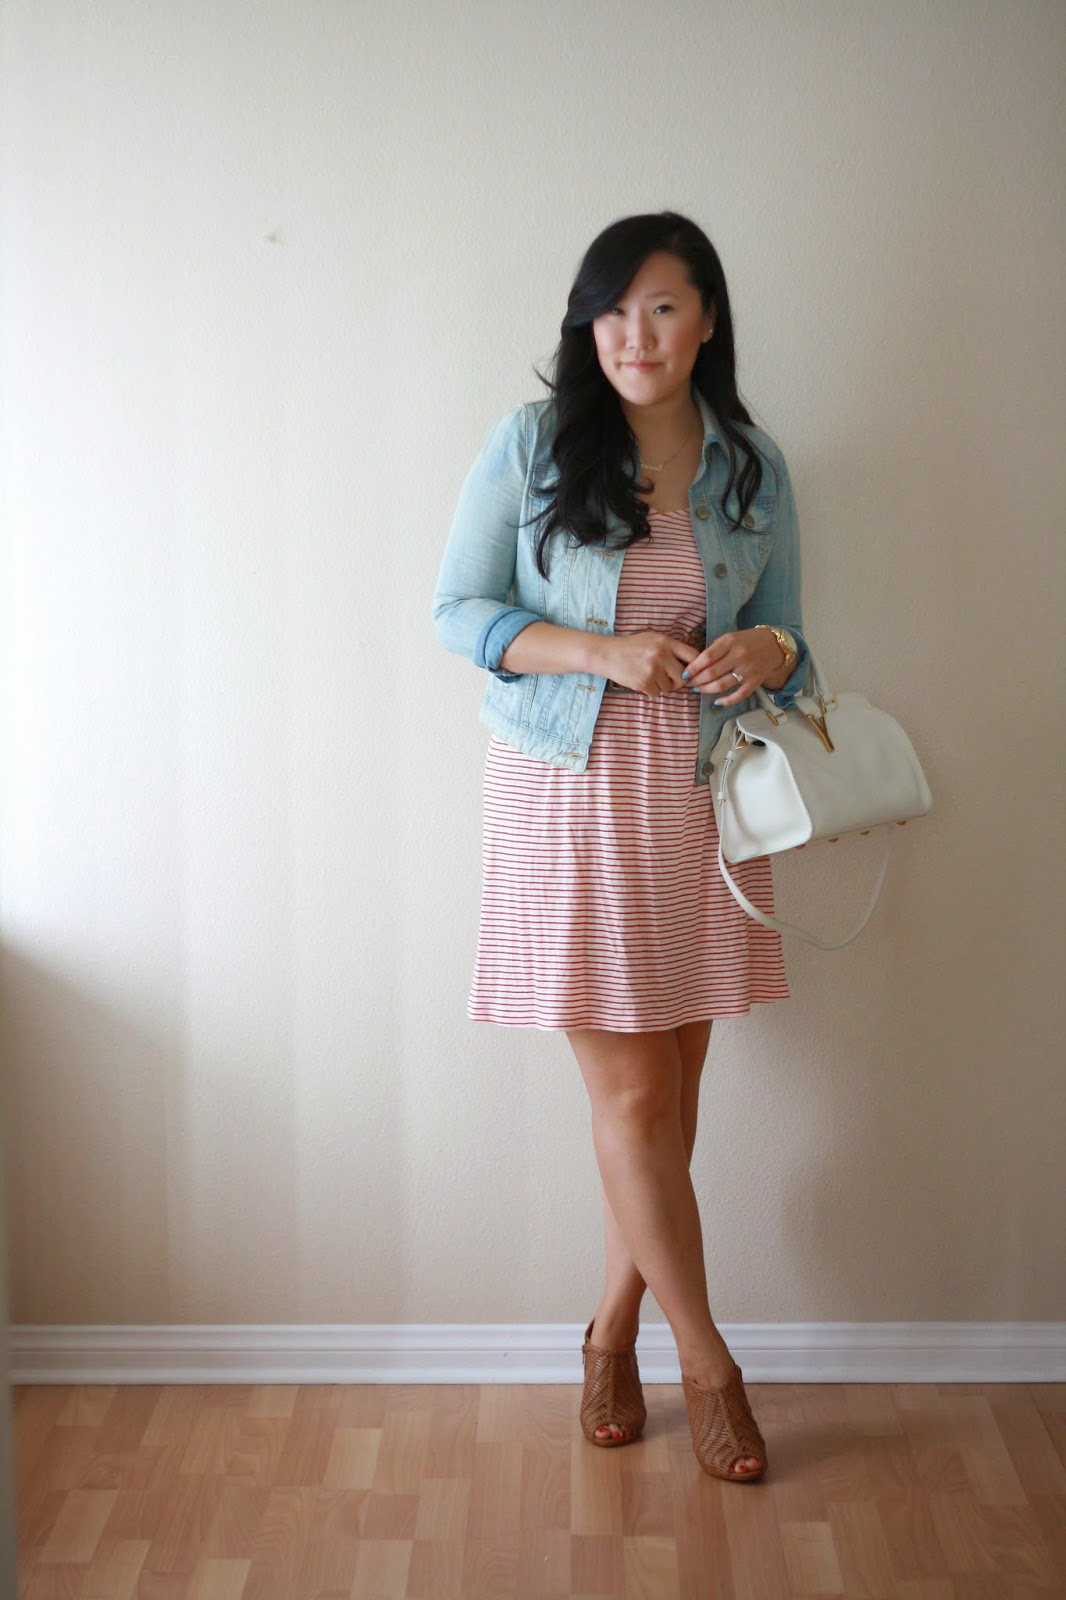 simplyxclassic, jcrew, stripes, candy stripes, ysl , ysl cabas, ysl handbag, gap denim, gap jacket, aldo shoes, heels, southern california blogger, blogger, fashion blogger, style blogger, ootd, outfit, summer